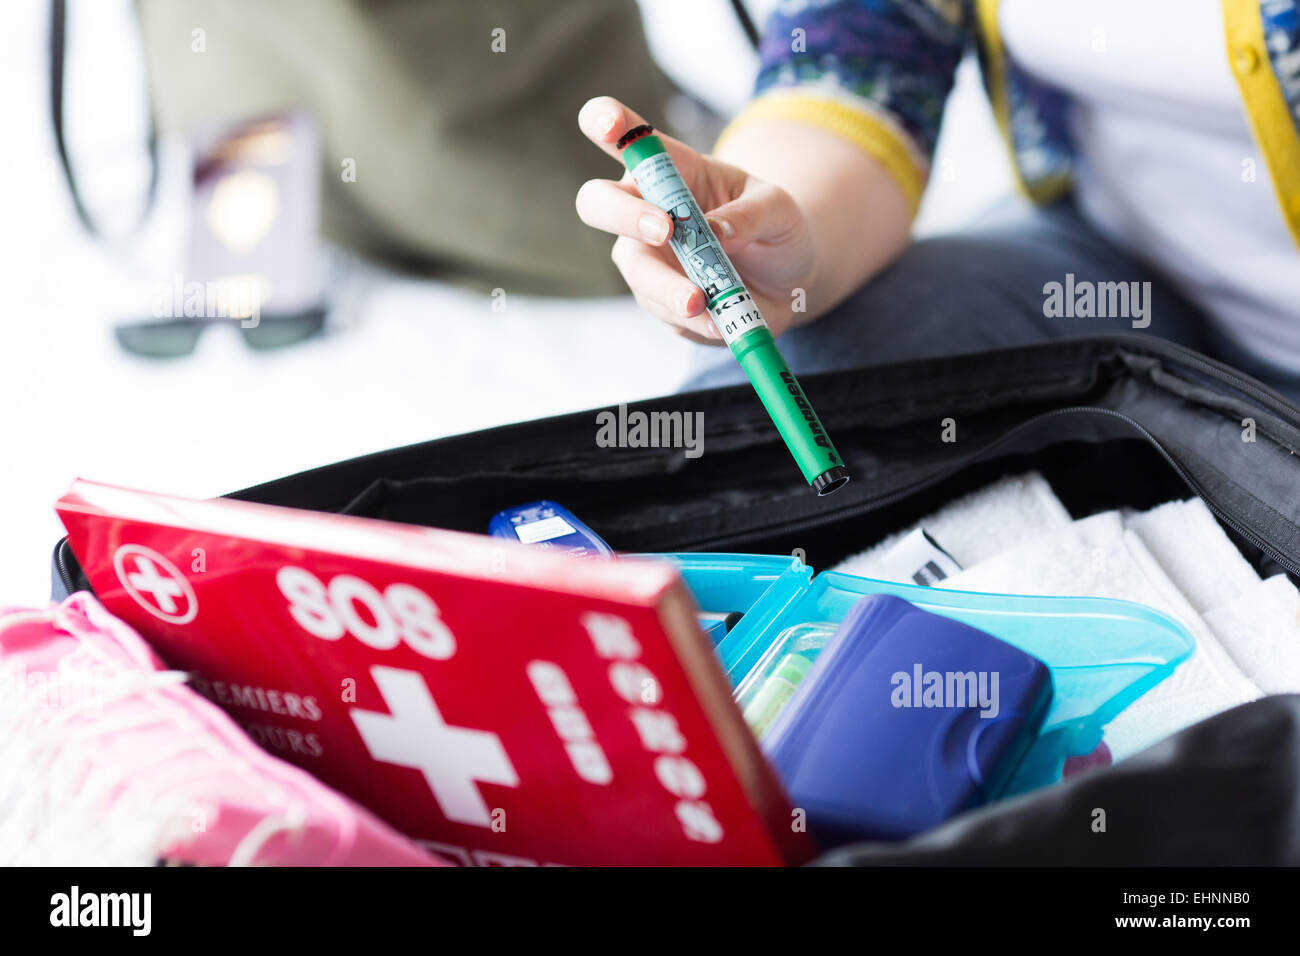 Anapen ®, epinephrine autoinjector, an emergency treatment in case of anaphylactic or anaphylactoid shock (allergies - Stock Image